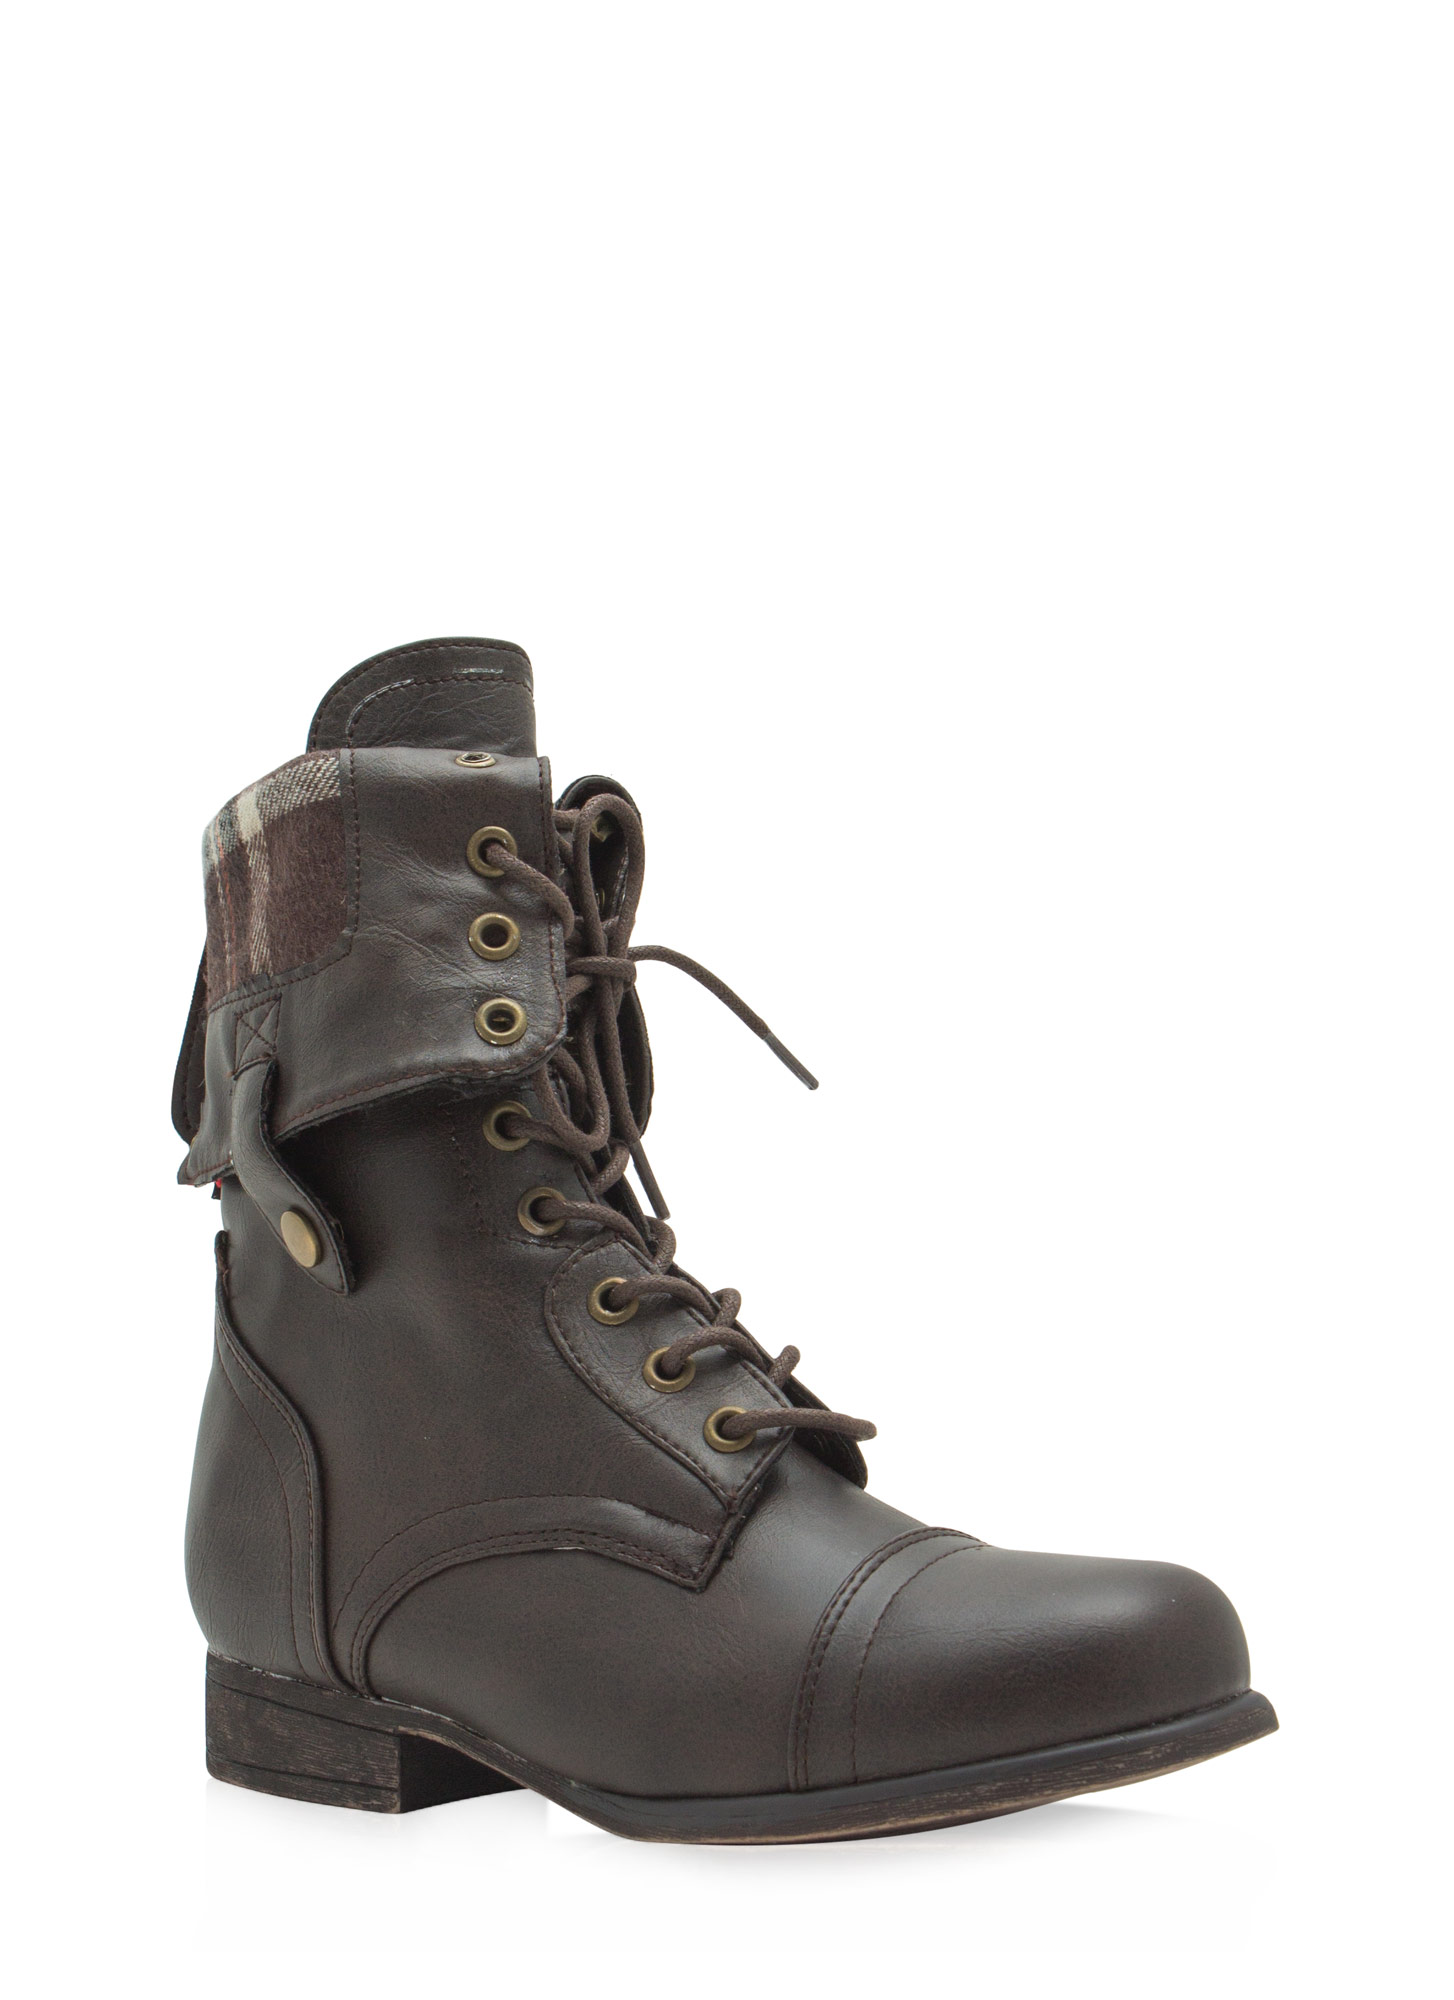 Foldover Lace-Up Combat Boots BROWNNATURAL